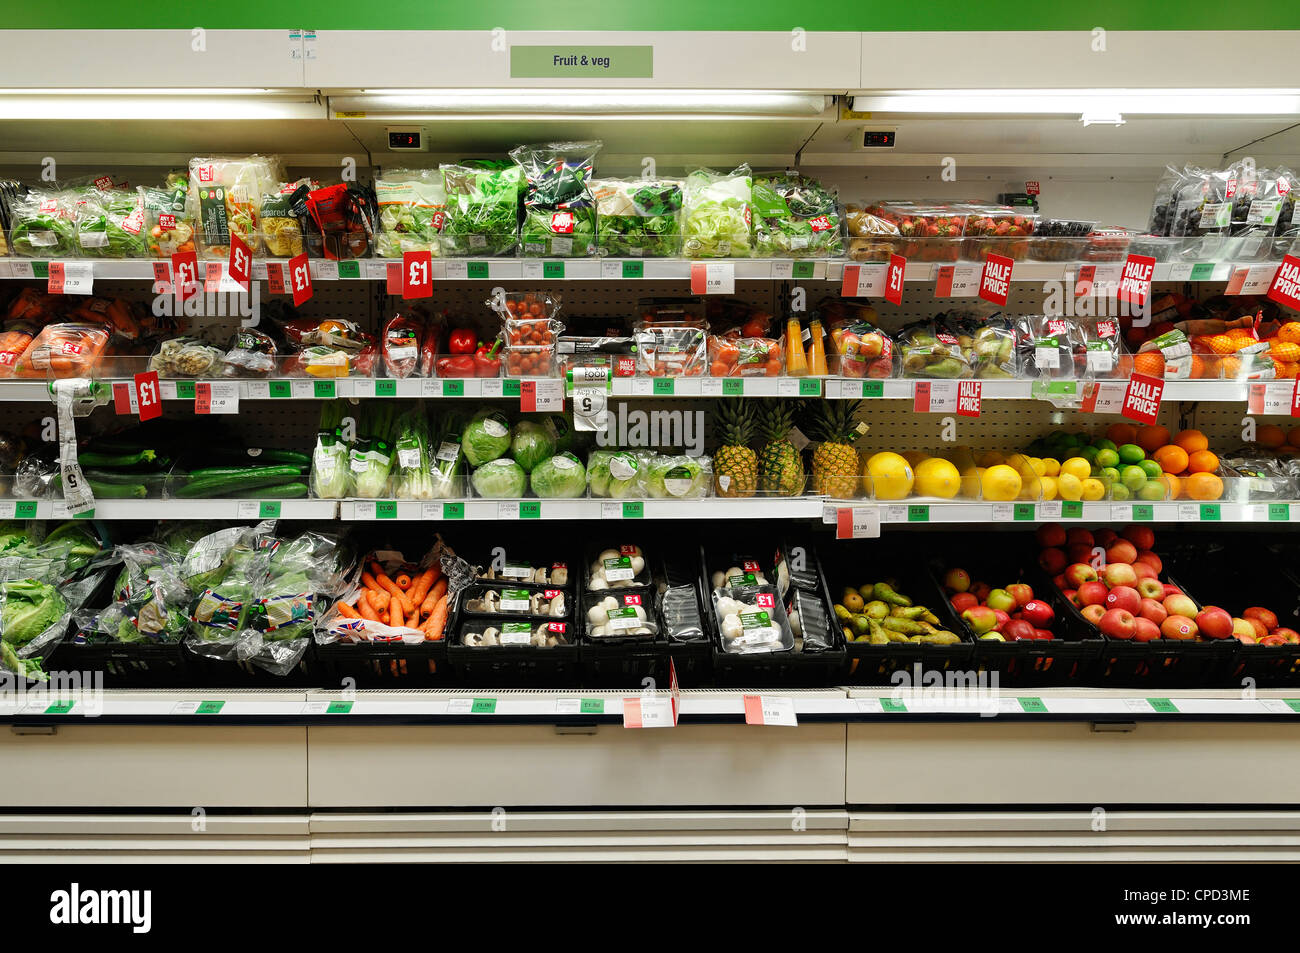 Fruit and Veg in a Supermarket, UK. - Stock Image